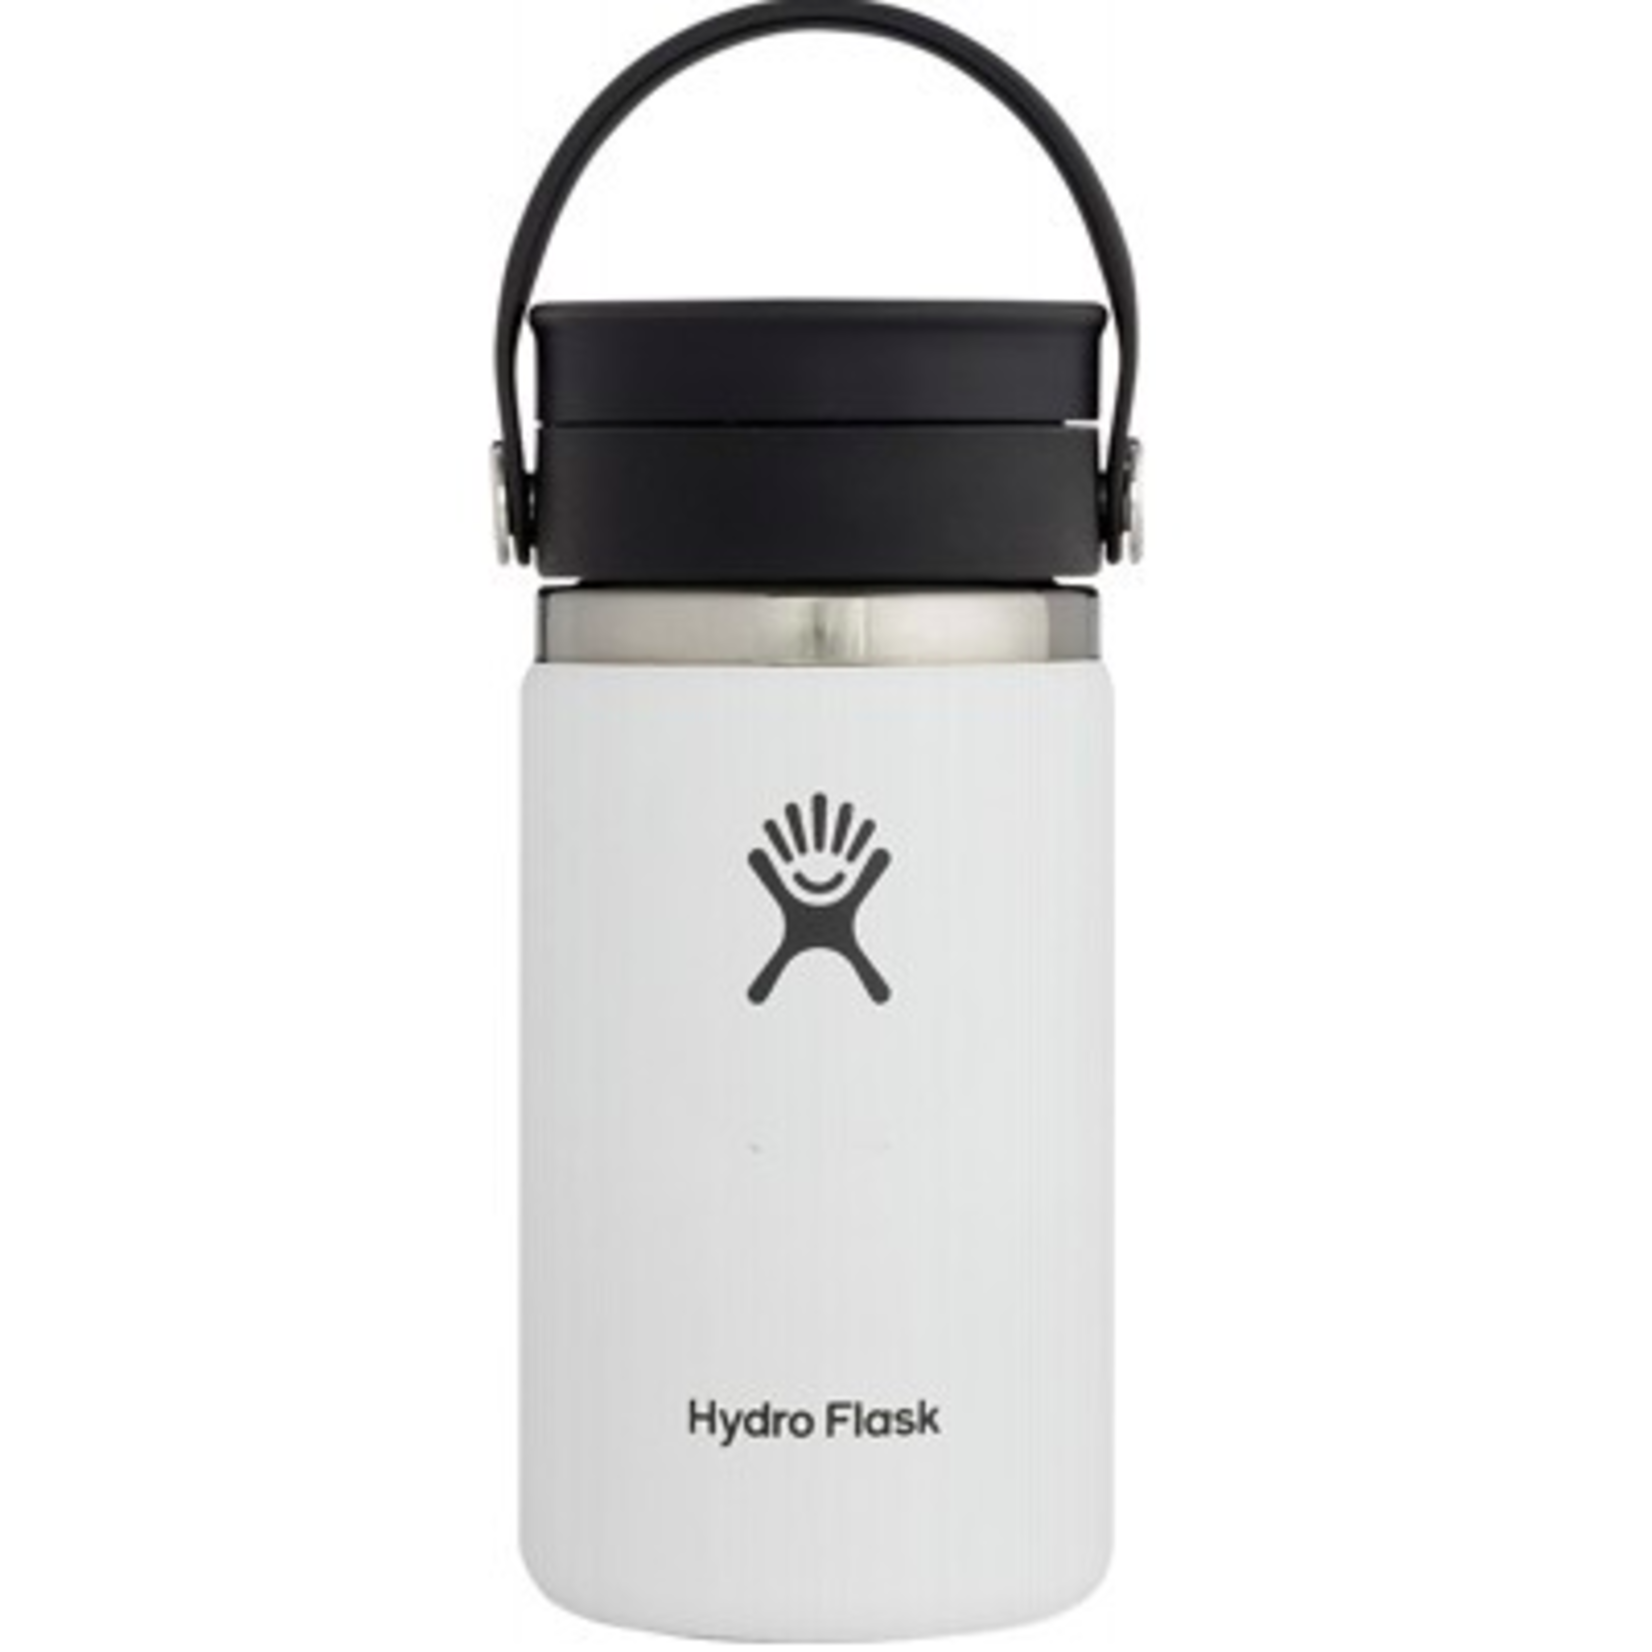 Hydro Flask Hydro Flask Wide Mouth Coffee Flask - Flex Sip Double Insulated 12oz